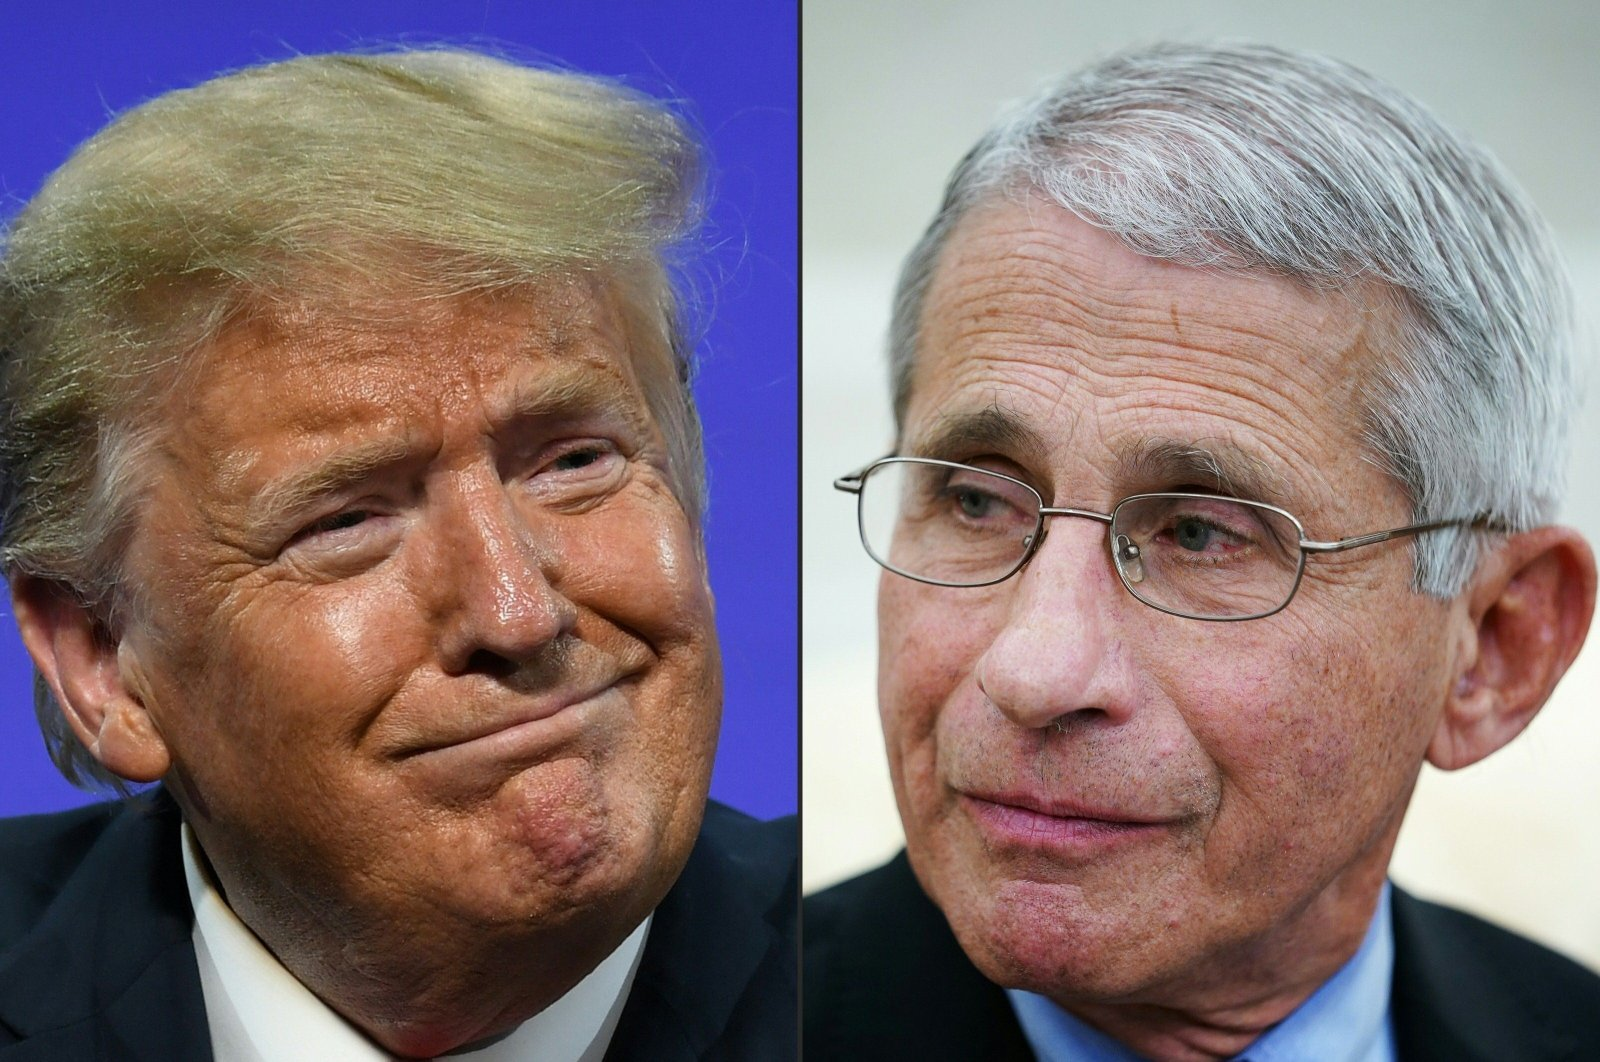 This file combination of pictures created on July 13, 2020, shows US President Donald Trump in Phoenix, Arizona, June 23, 2020, and Anthony Fauci, director of the National Institute of Allergy and Infectious Diseases in Washington, DC, April 29, 2020. (AFP Photo)